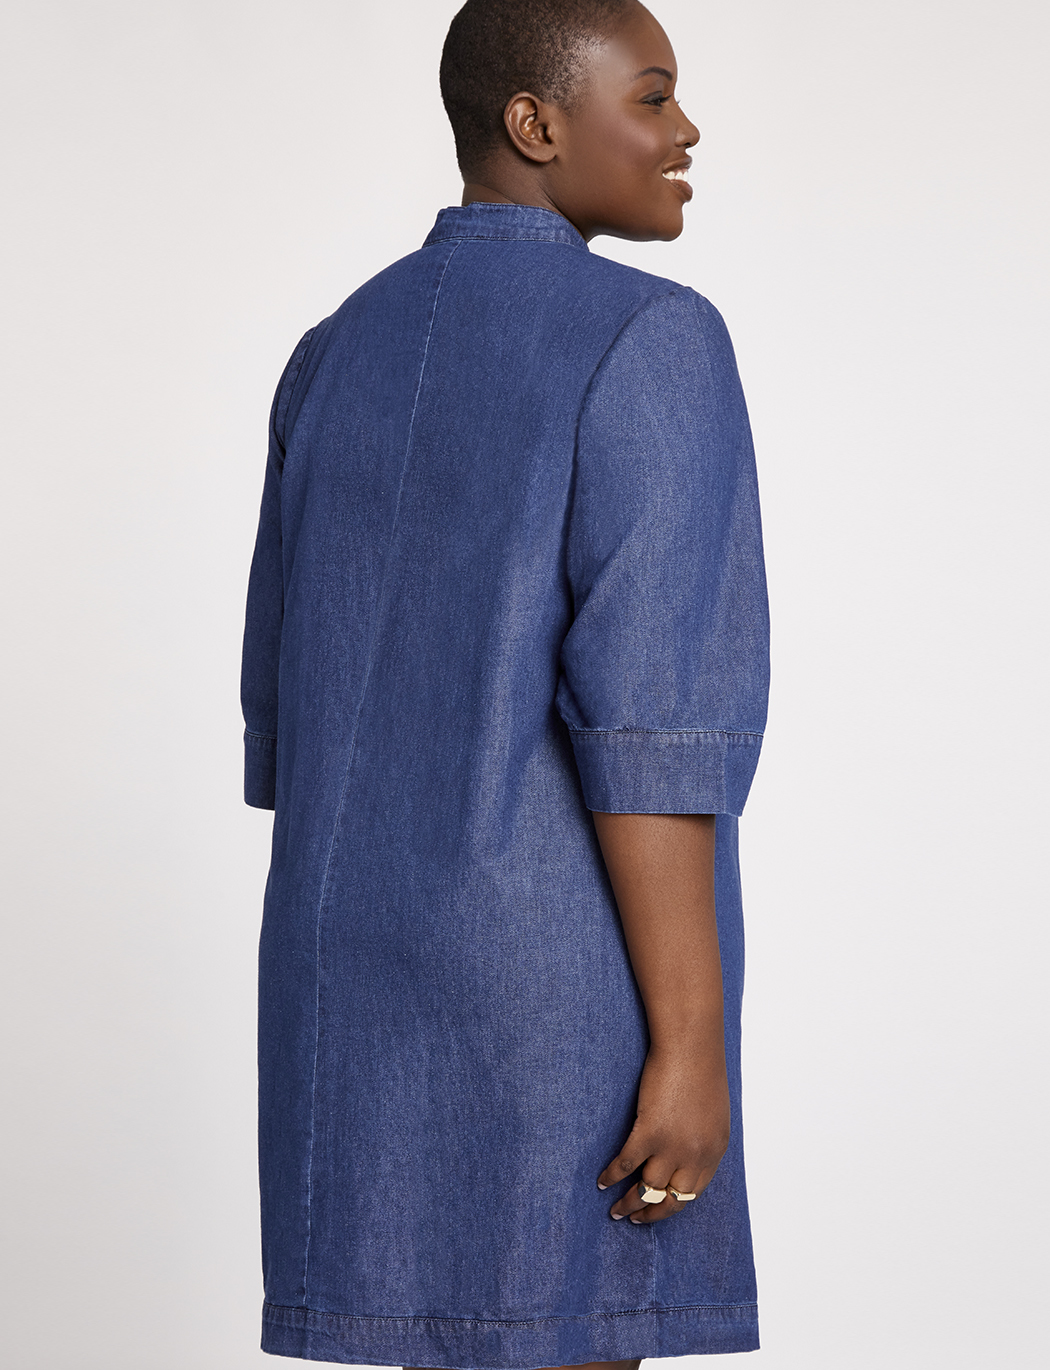 Denim Dress with Tie Neck